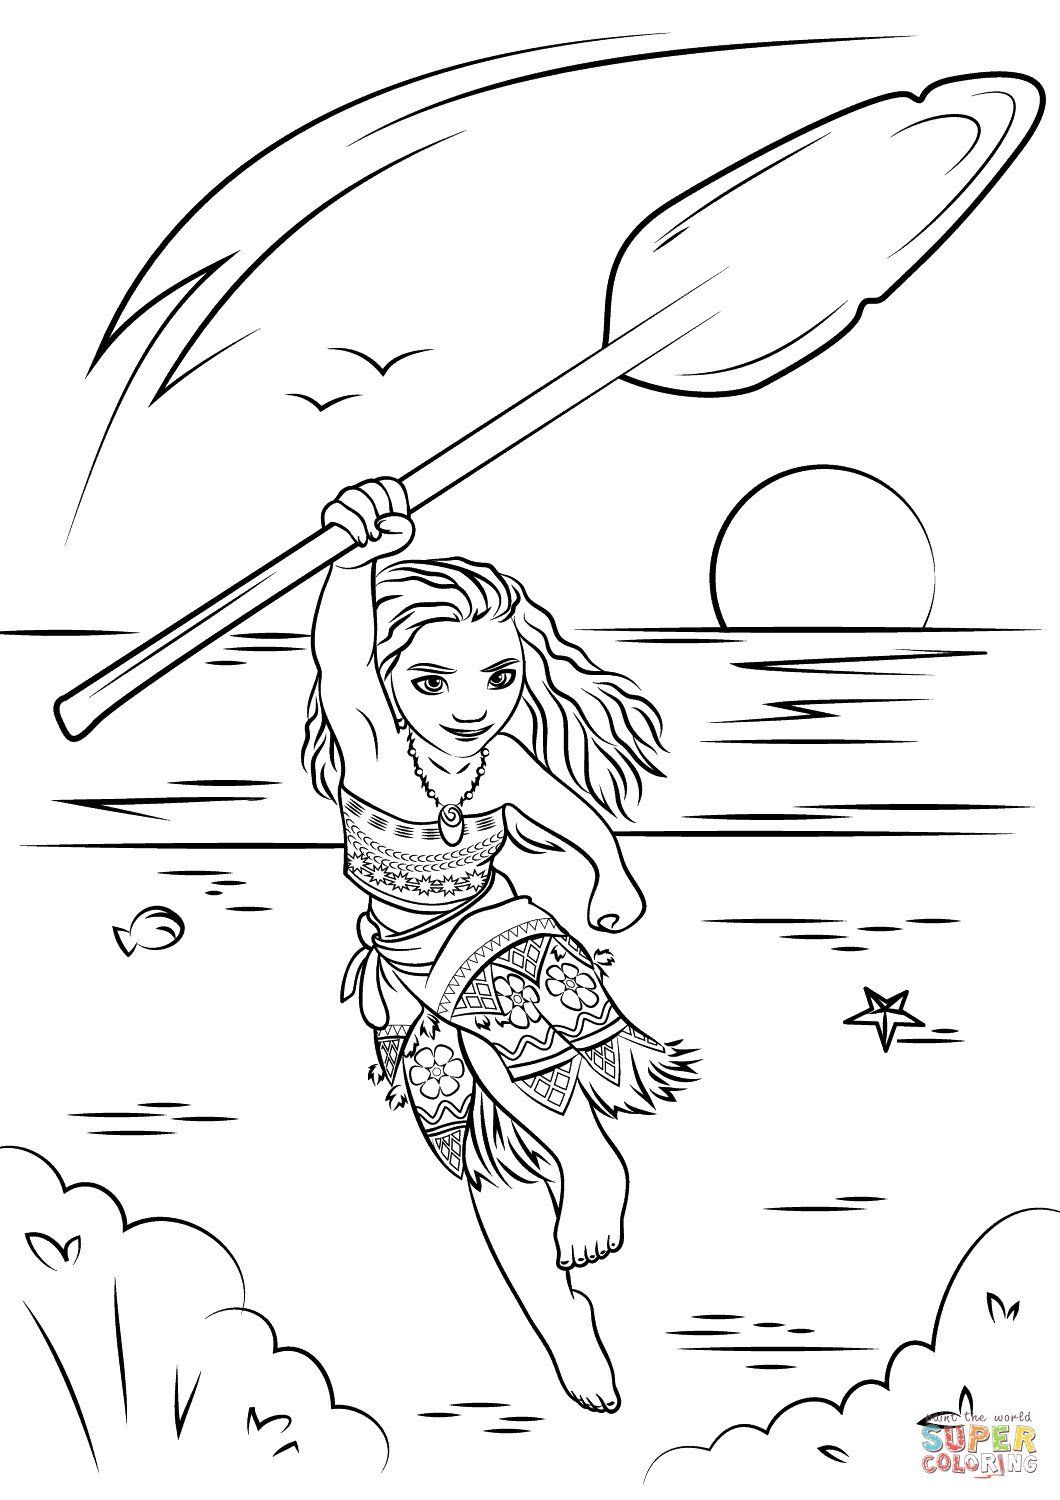 Easy Moana Coloring Pages